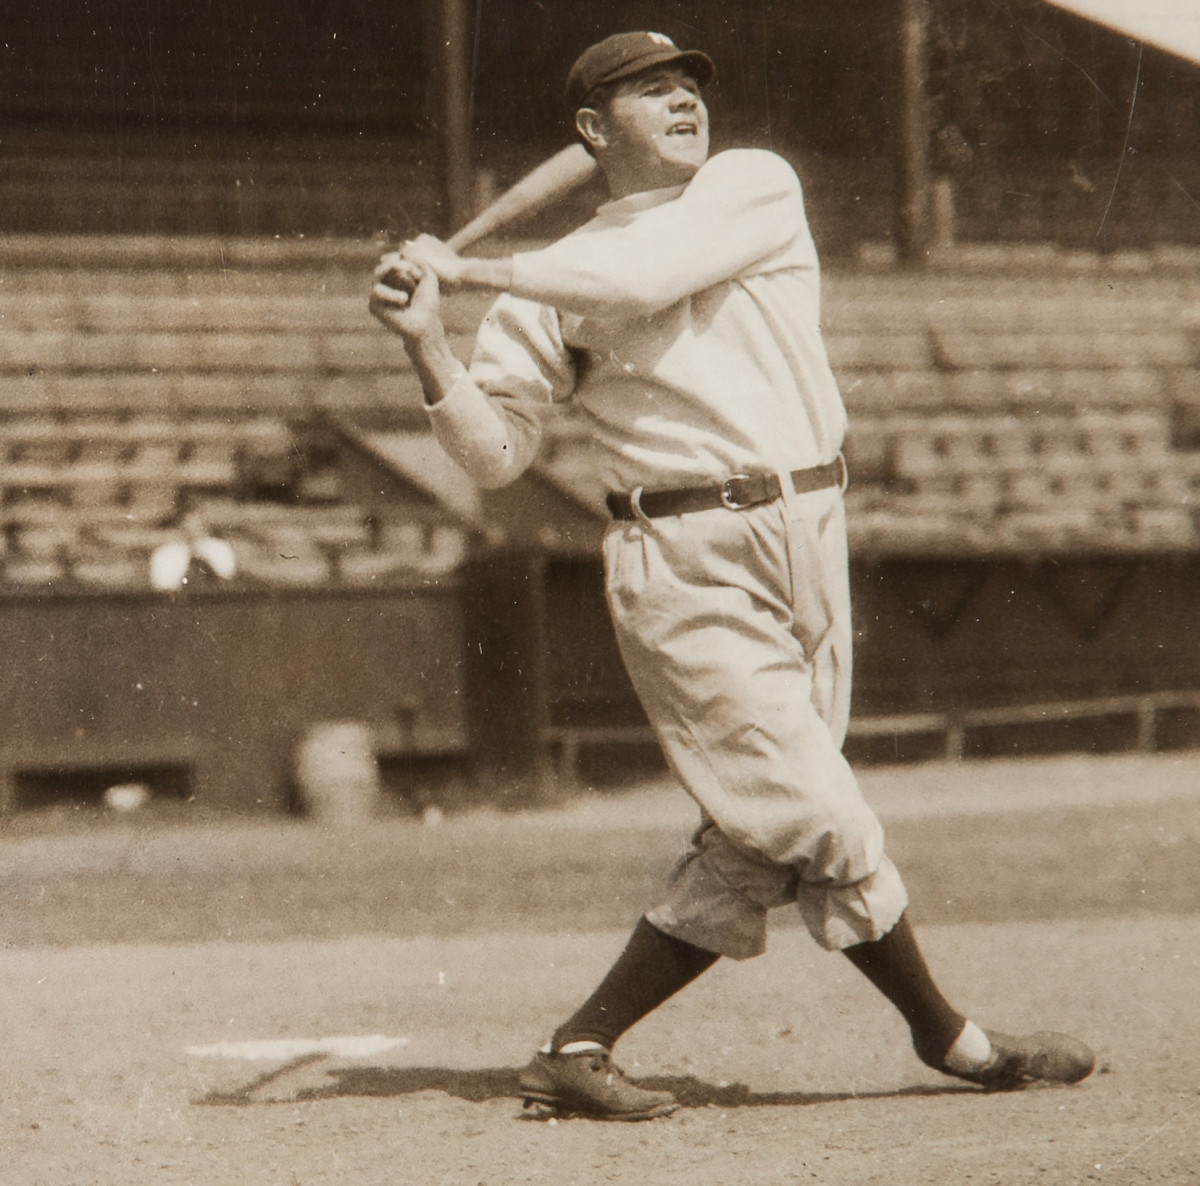 Babe Ruth, King of the Long Ball, Could Also Play Small Ball